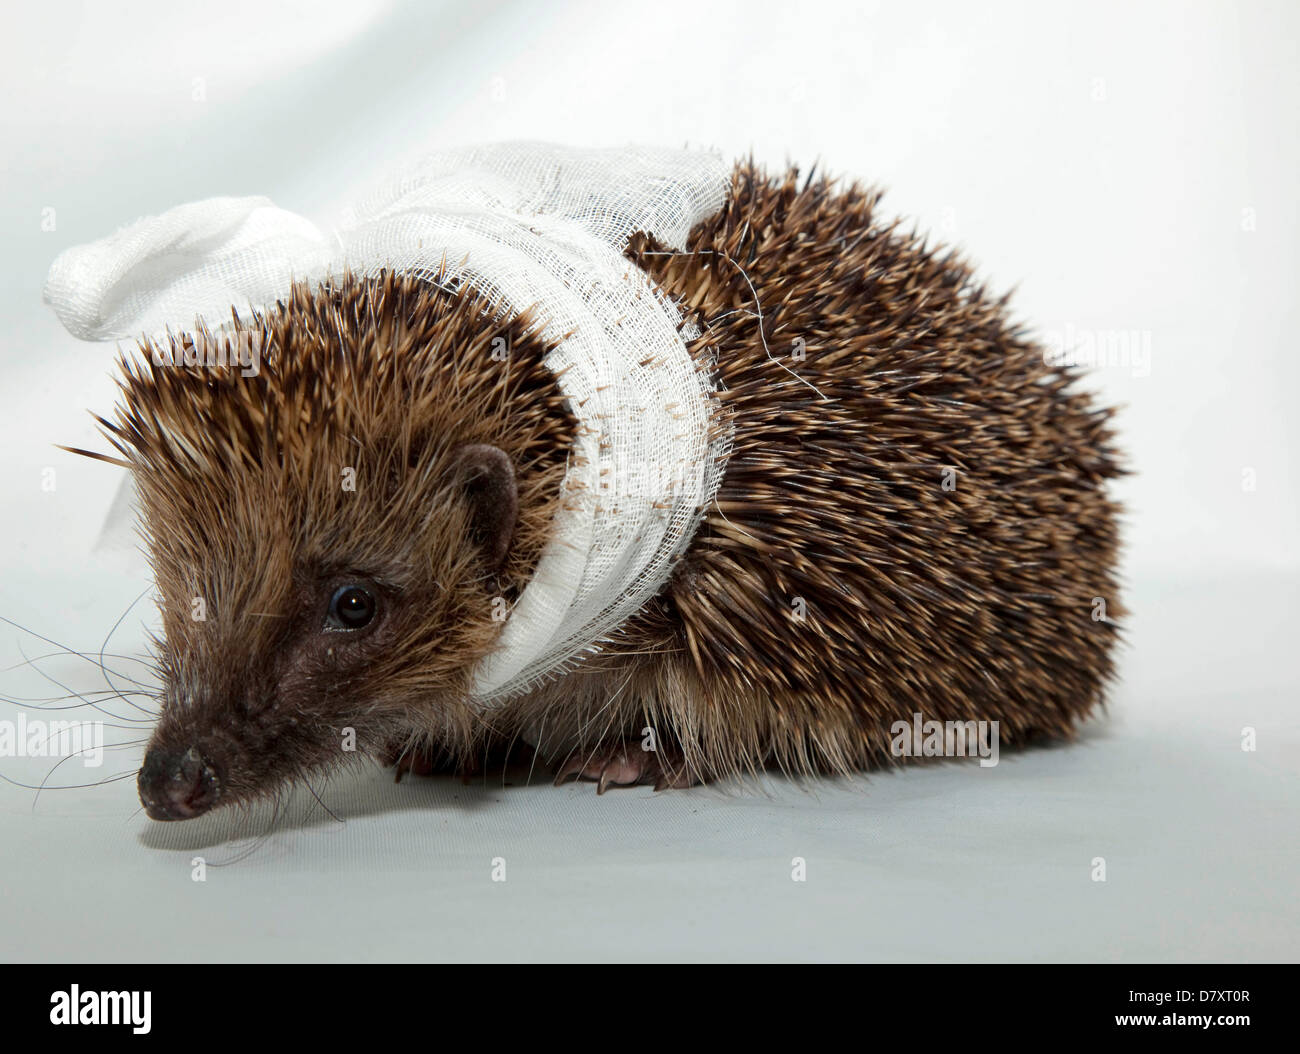 European Hedgehog with bandage on neck - Stock Image